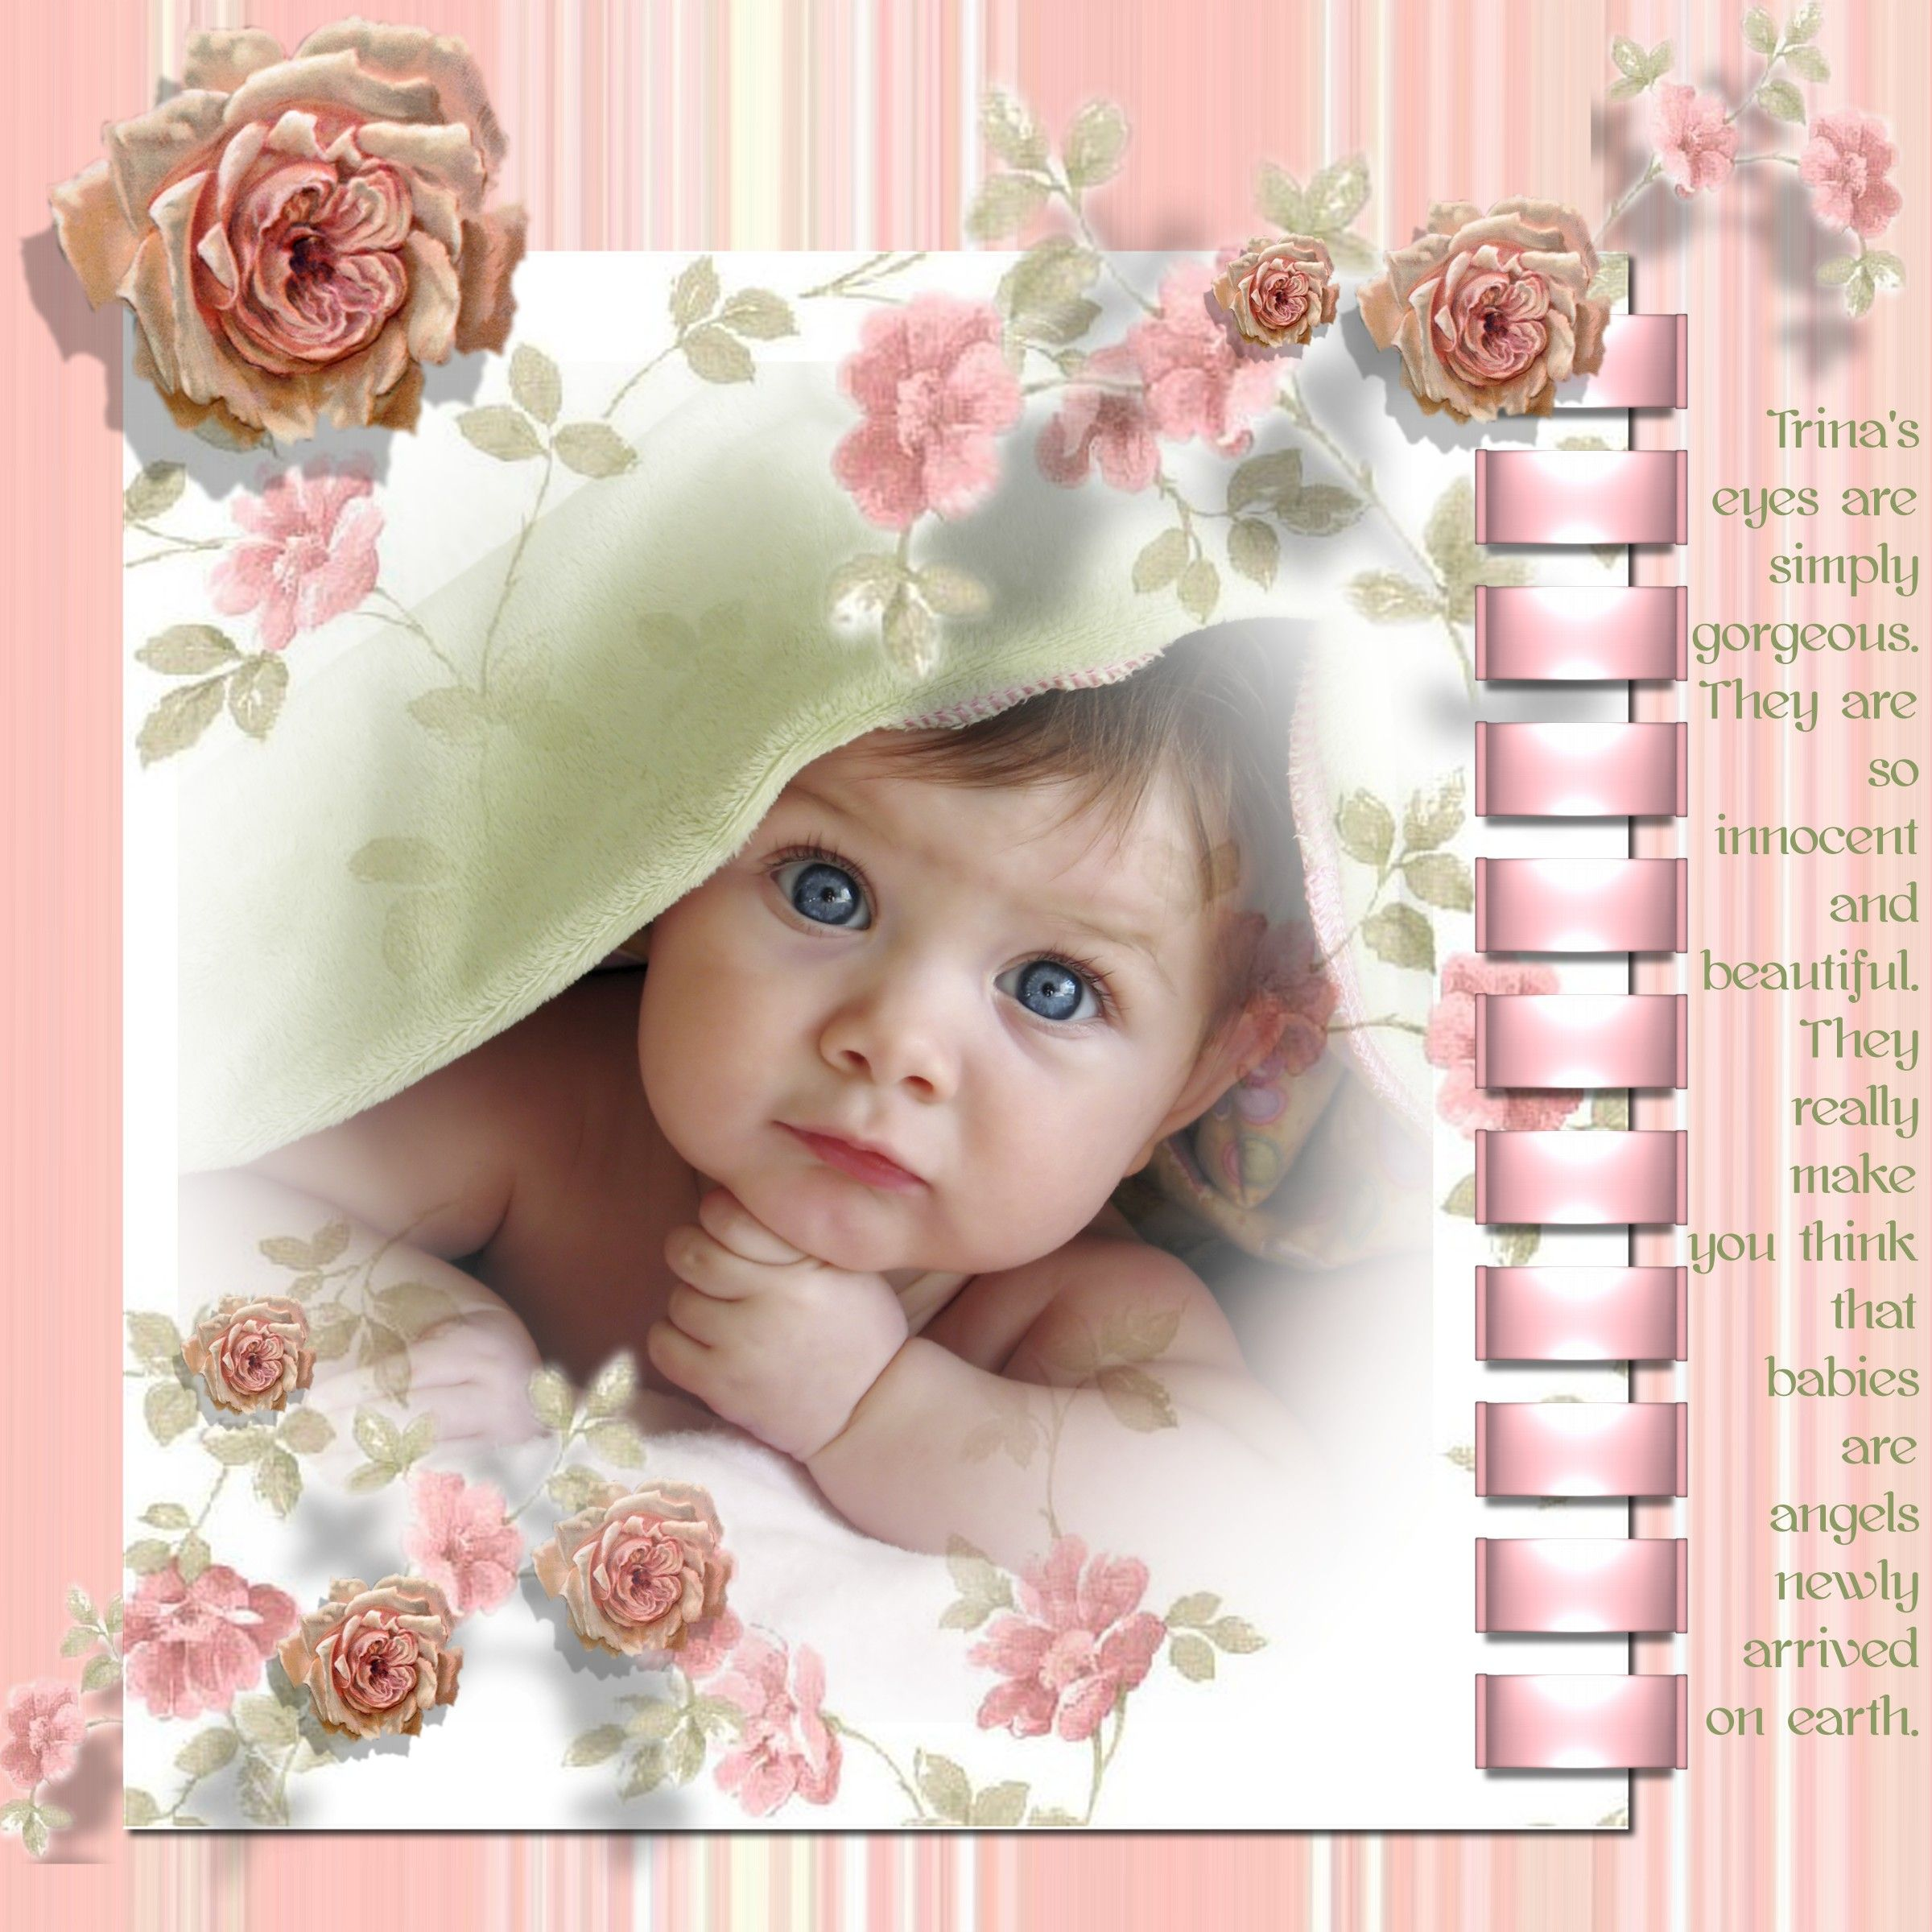 Baby scrapbooking ideas media kit scrapbook max digital scrapbooking software girl - Scrapbooking idees pages ...